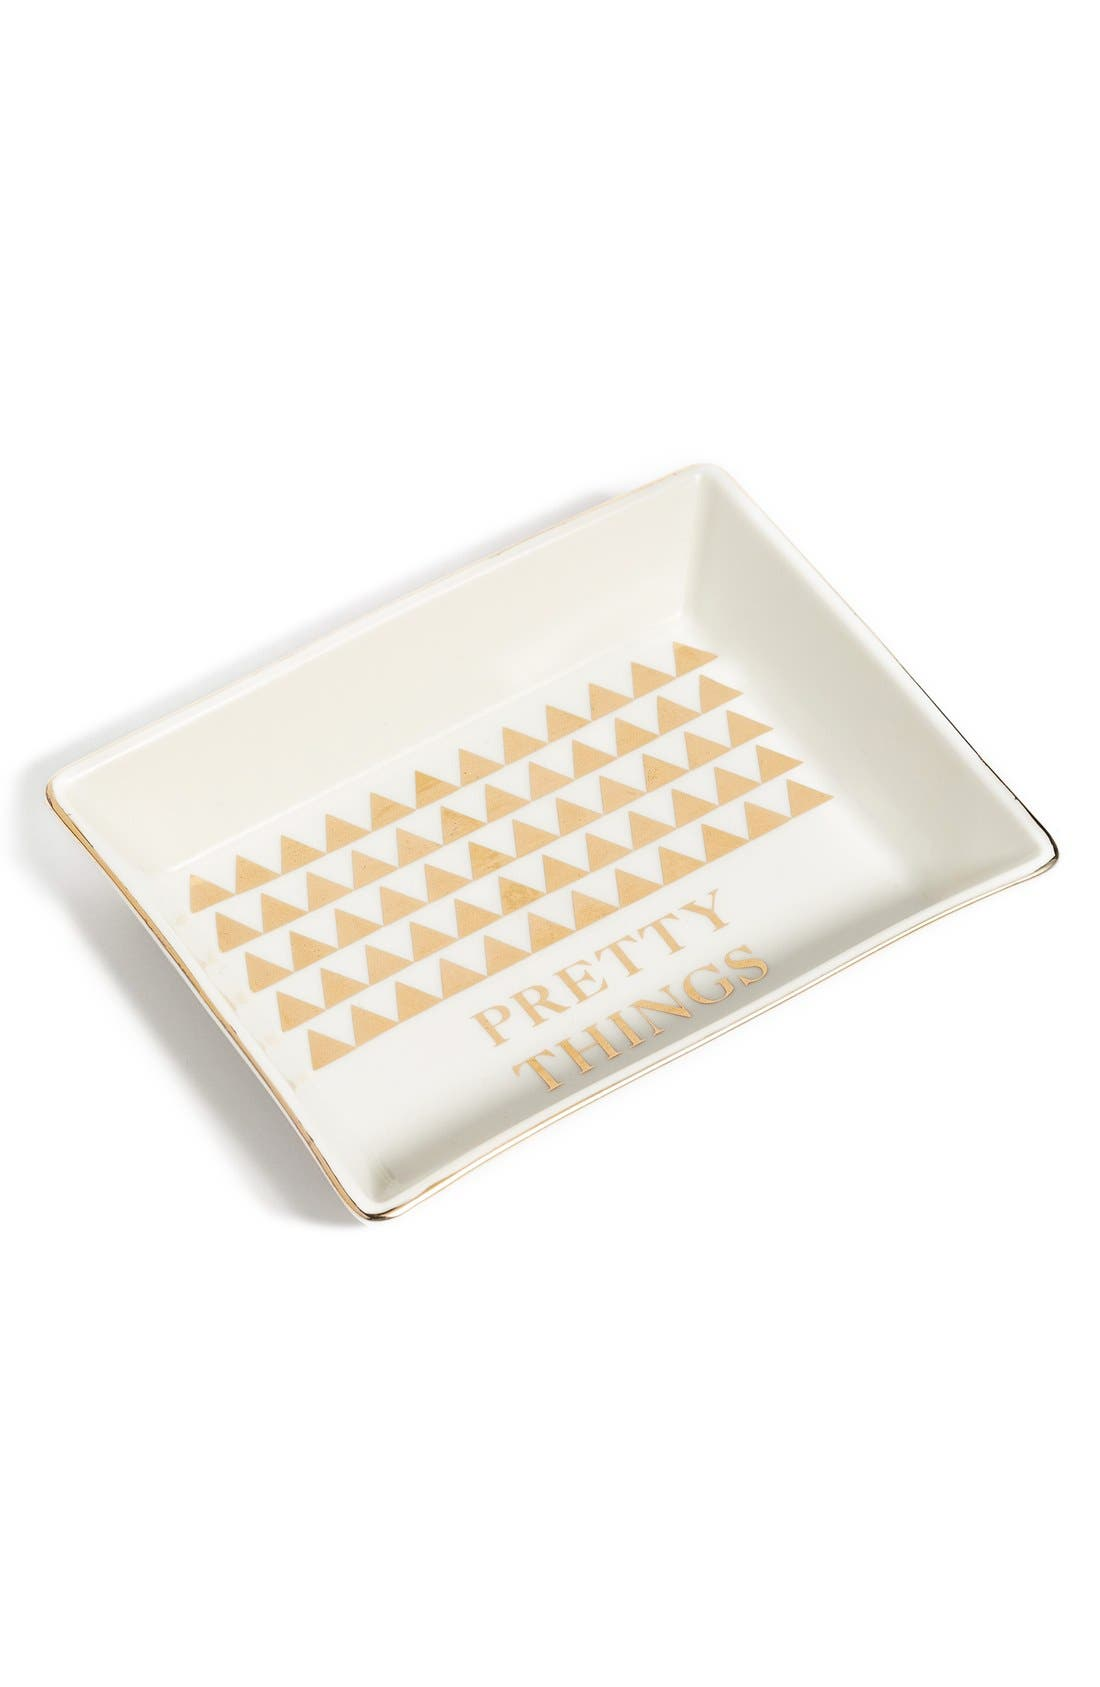 Main Image - OK originals Pretty Things Jewelry Dish